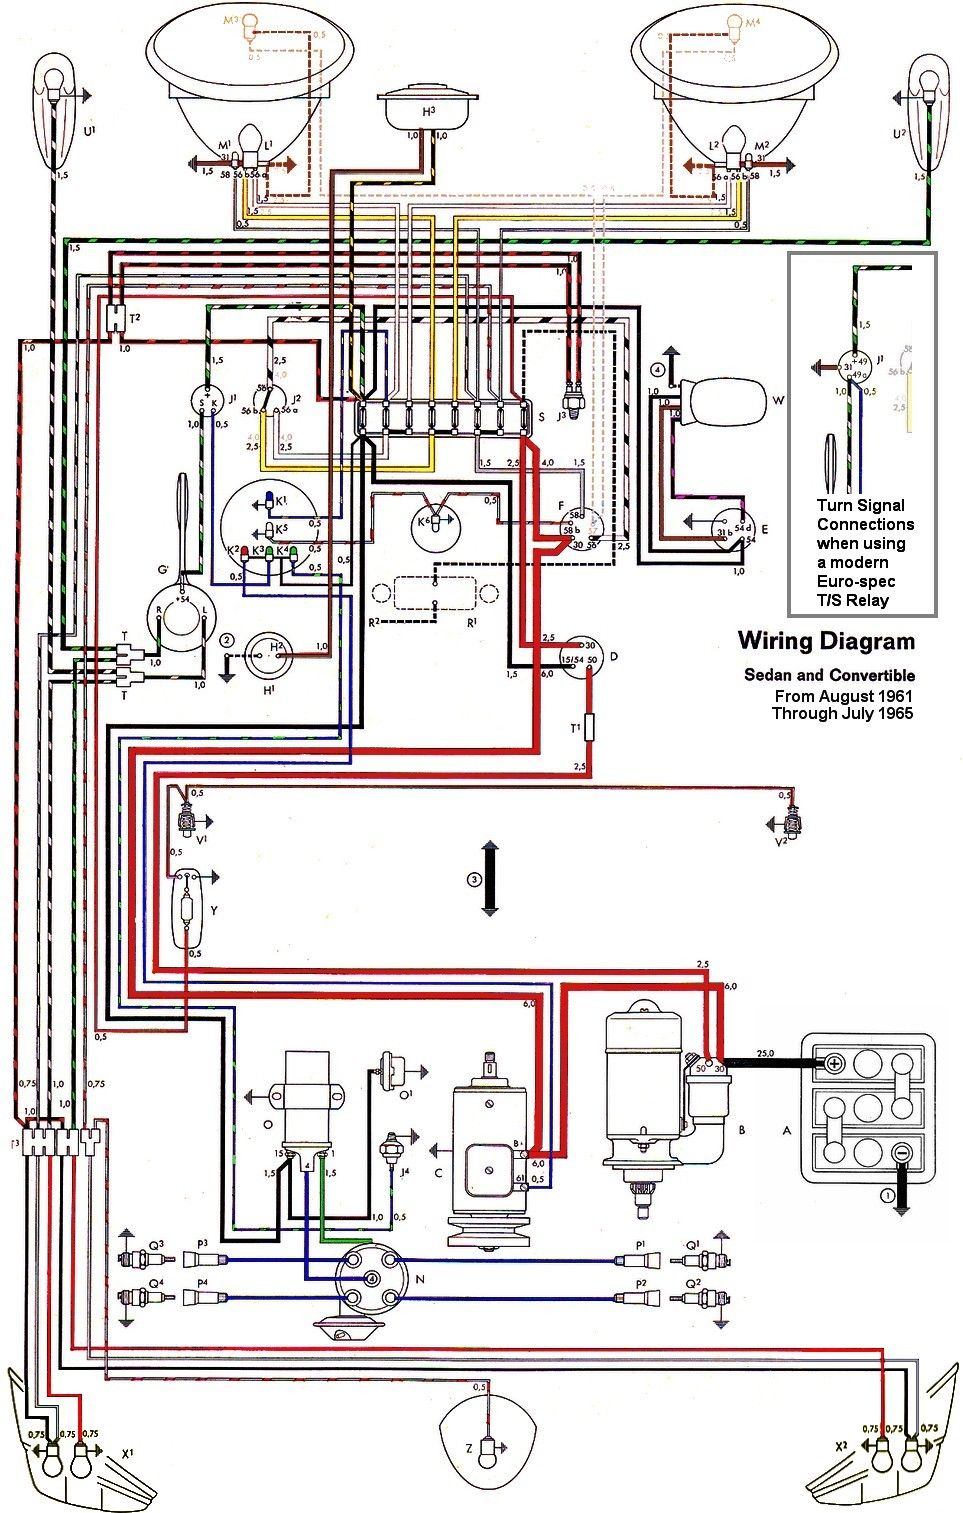 70 Vw Wire Harnesses | Control Cables & Wiring Diagram  Vw Wiring Diagram on 1971 vw super beetle starter diagram, 70 vw beetle, 70 vw chassis, 70 vw engine, bay window diagram, 1968 vw beetle speedometer diagram, 1970 vw electrical diagram, 74 super beetle front end diagram, vw type 3 engine diagram, vw beetle fuse box diagram, 2nd gen eclipse alternator diagram,